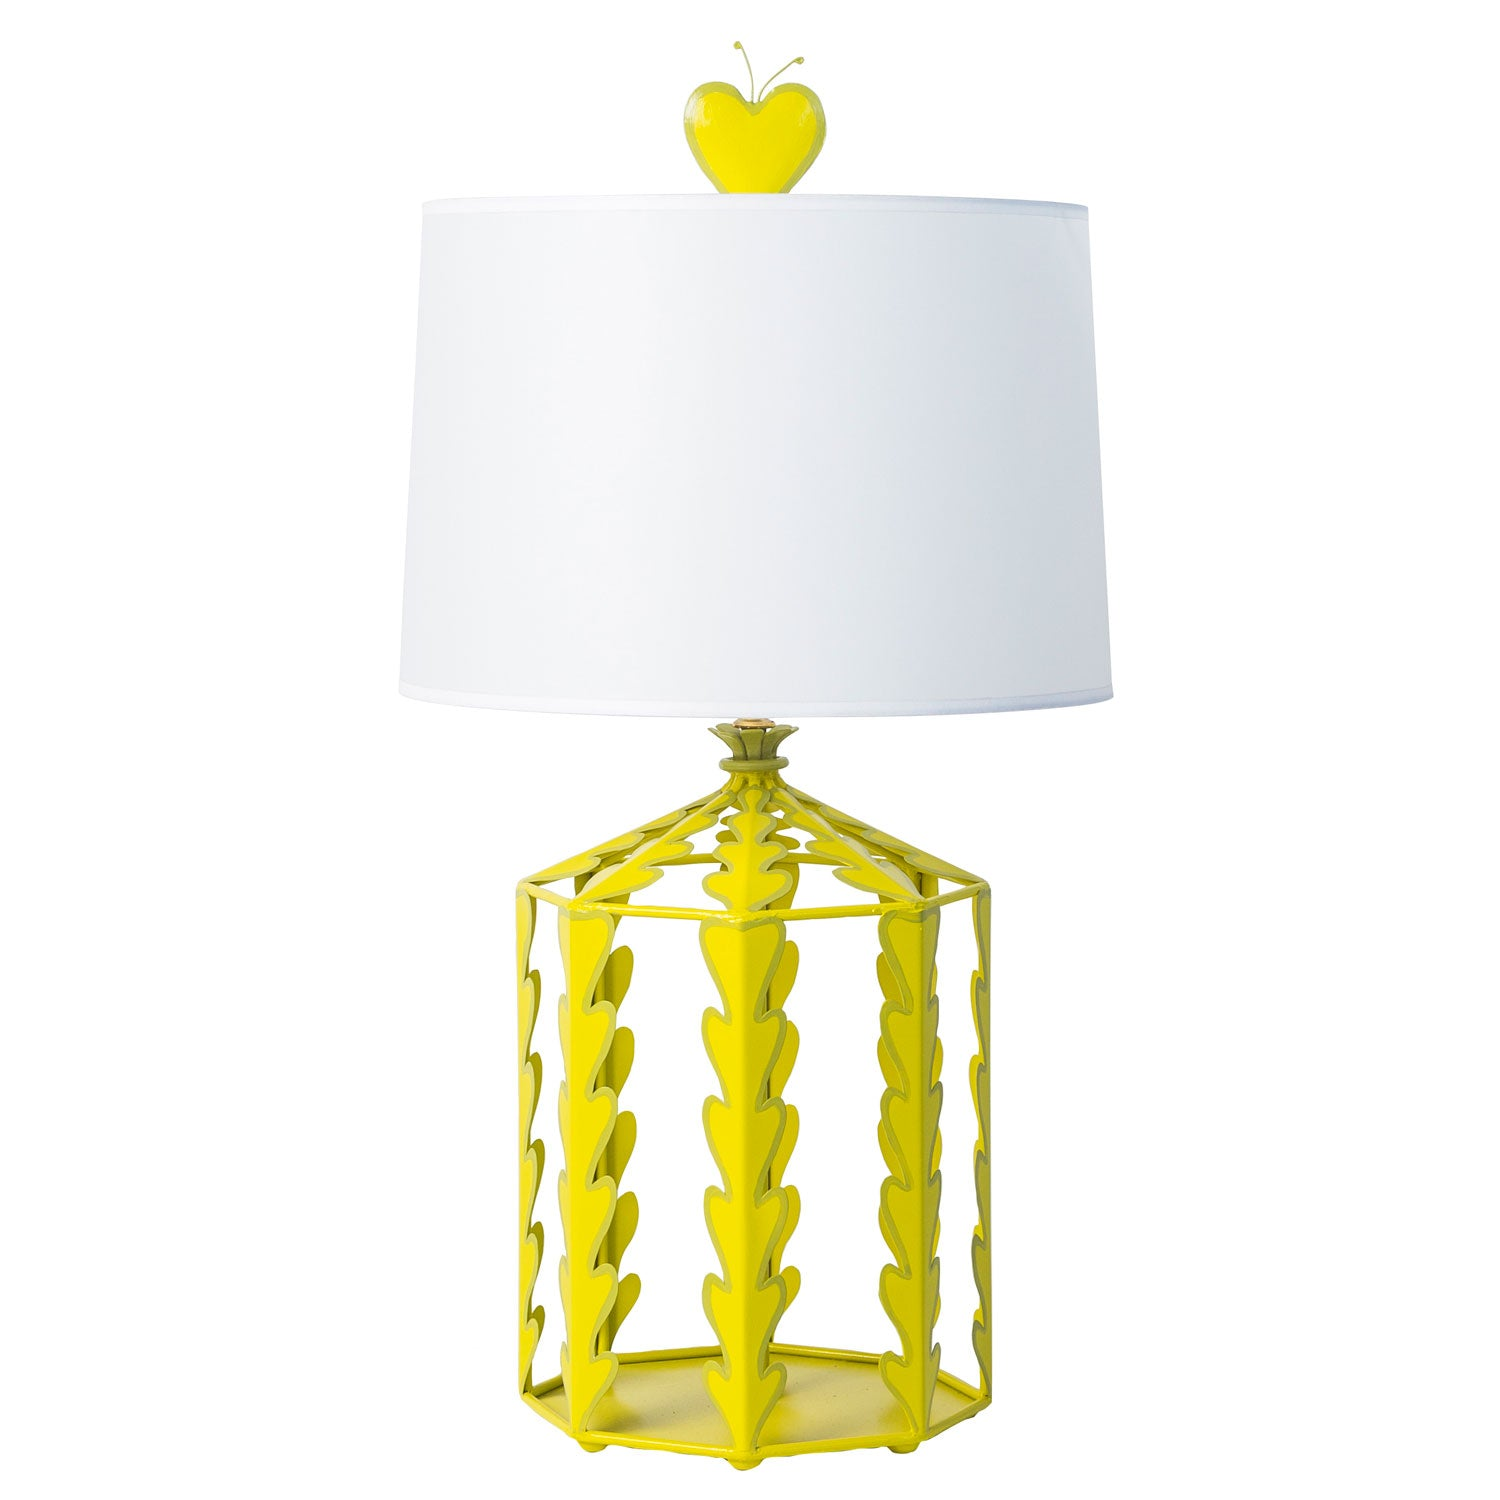 Alice Table Lamp in chartreuse, handmade for stray dog designs